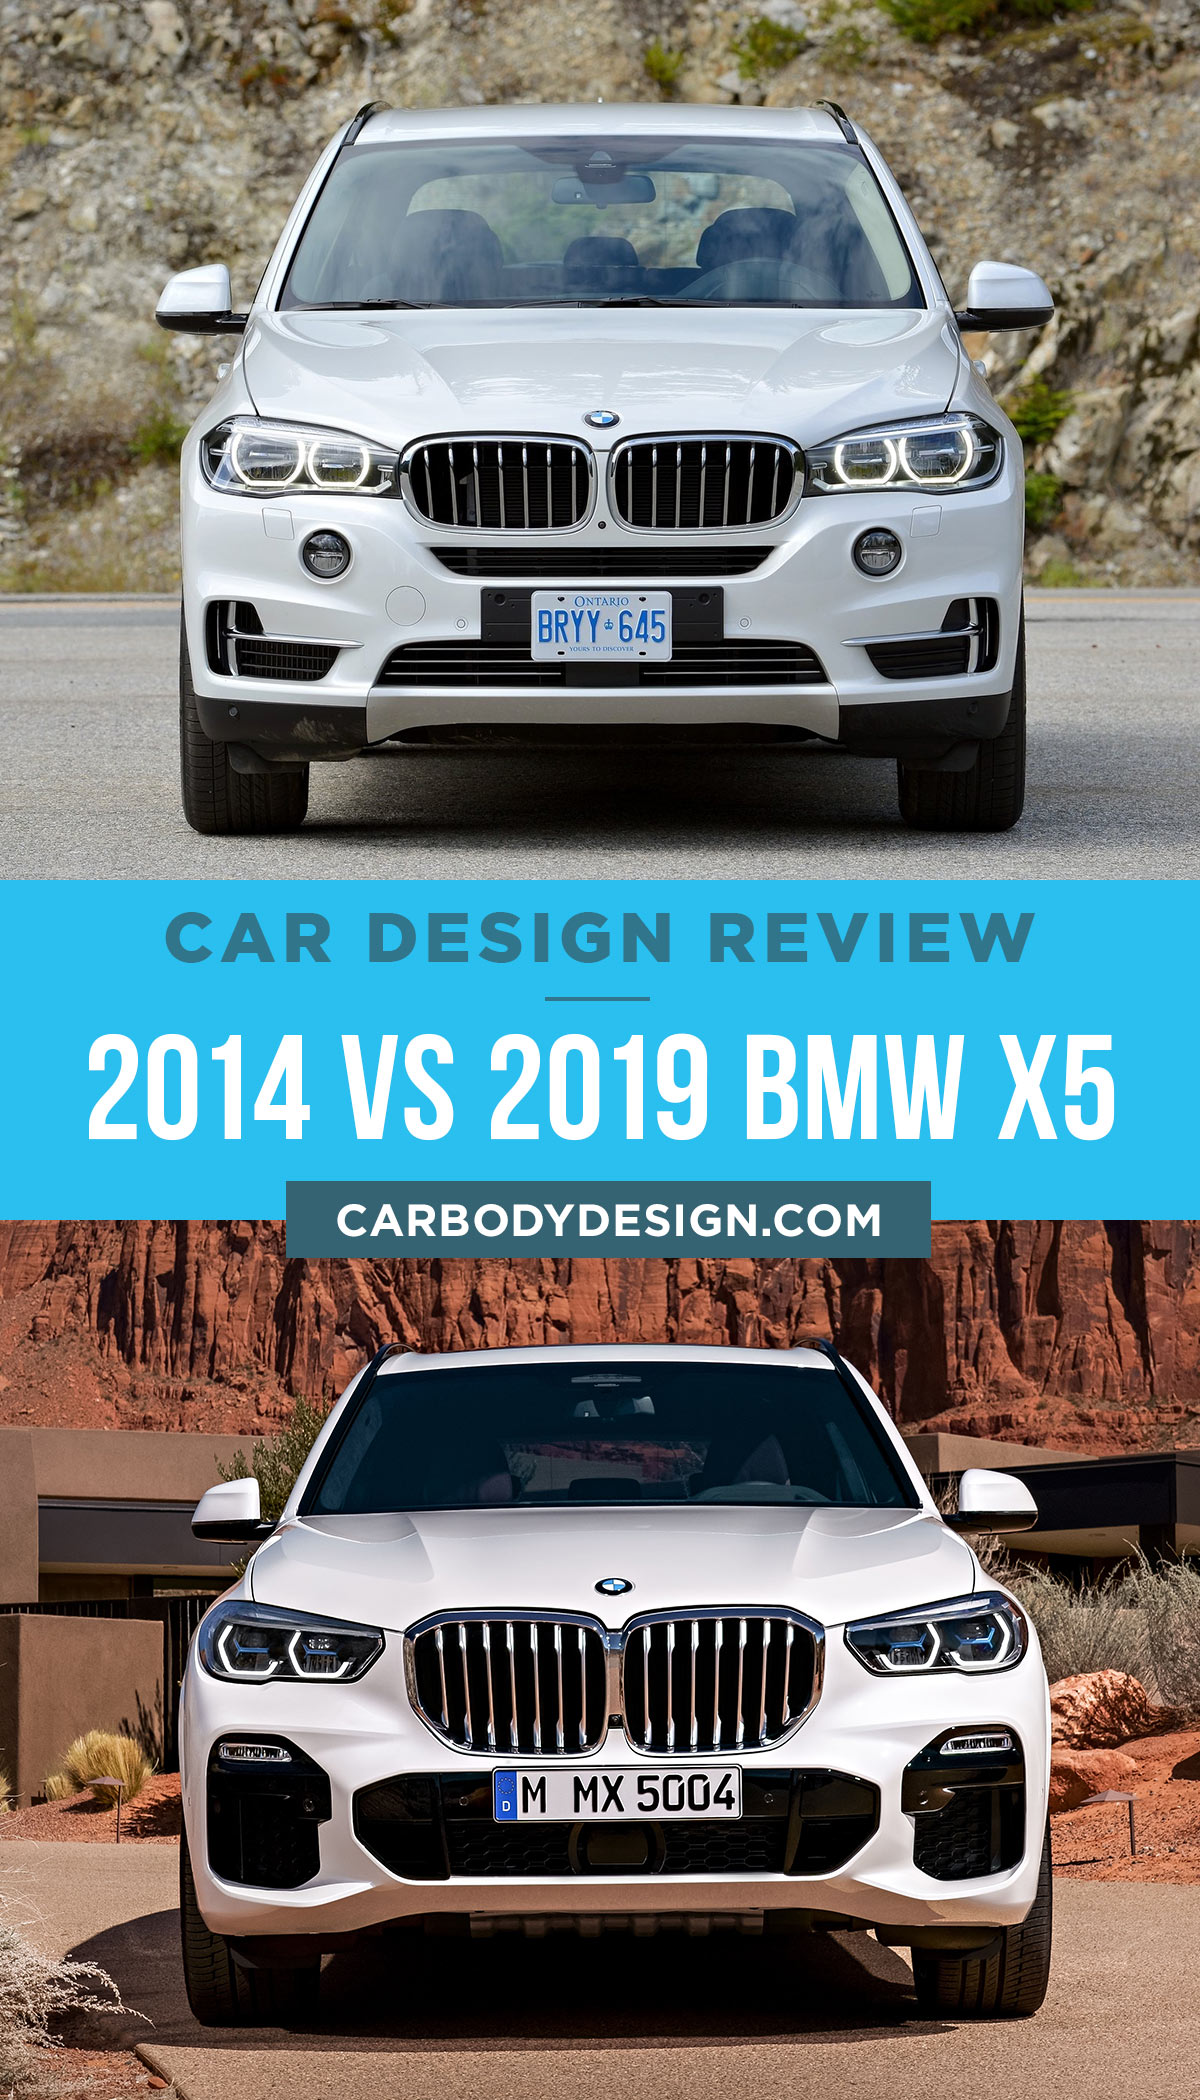 2014 Vs 2019 Bmw X5 Front View Design Car Body Design